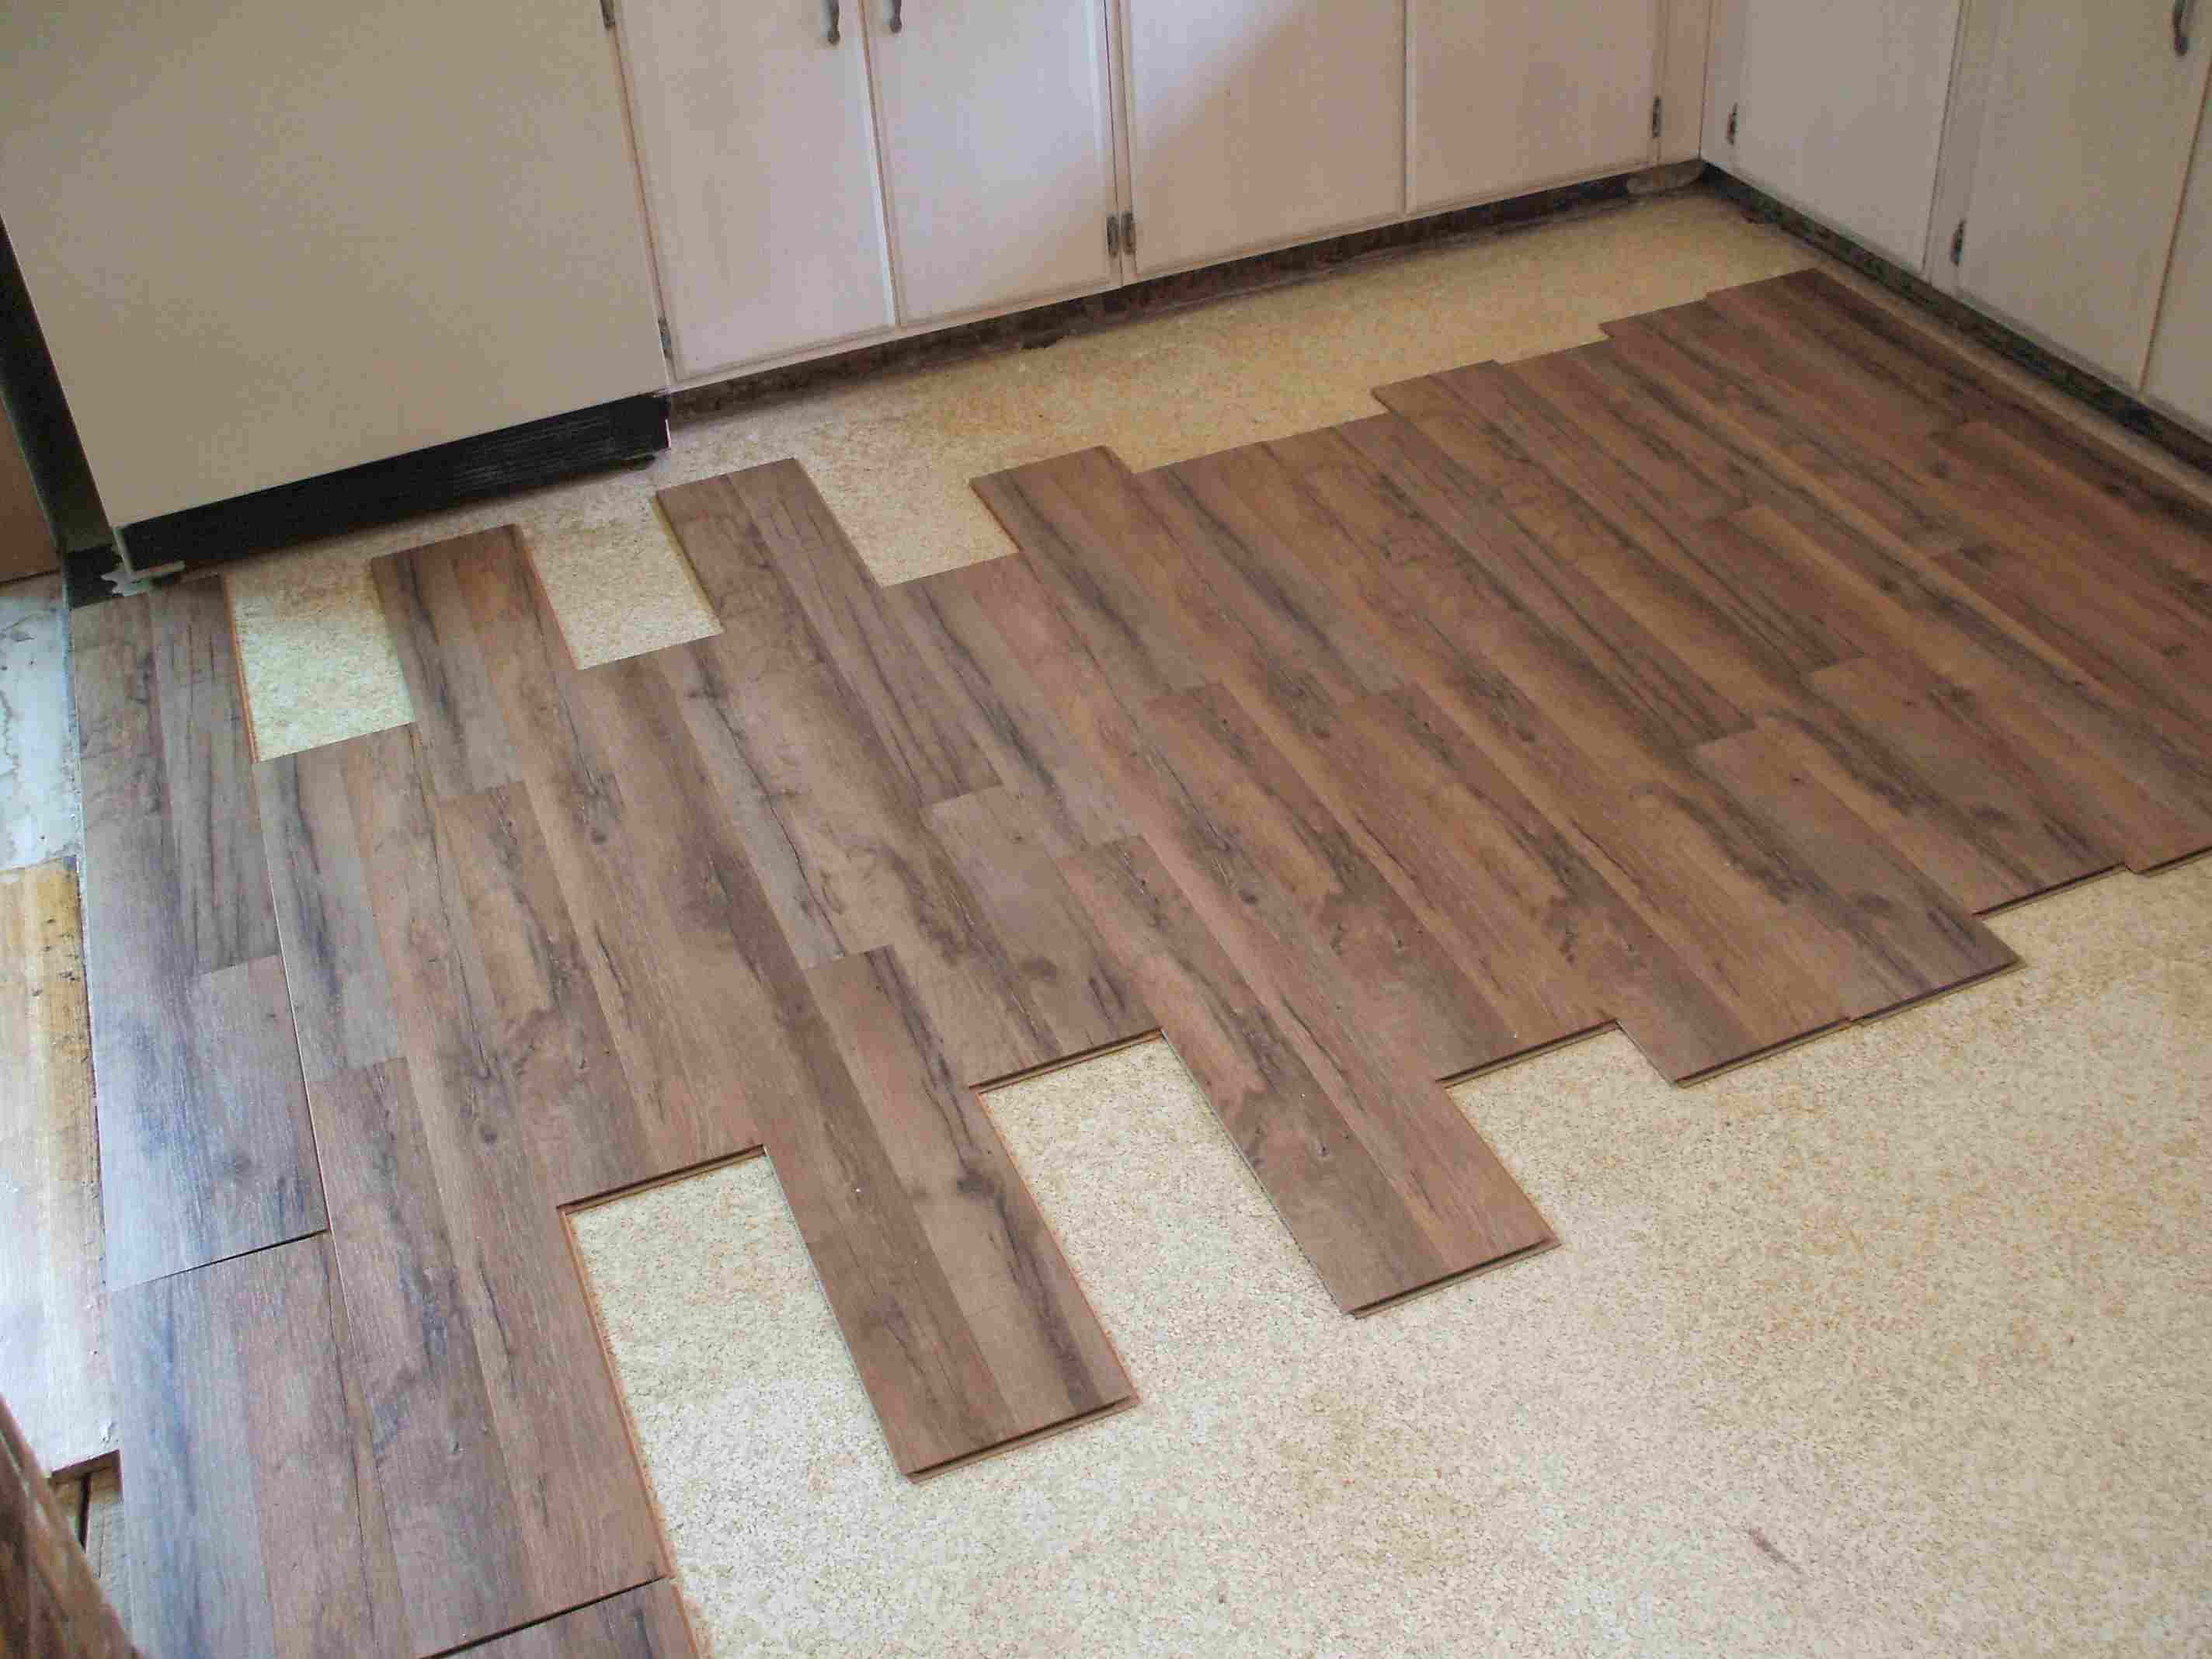 Floor Lamination Cost Diditjustforyou, How Easy Is It To Lay Laminate Flooring